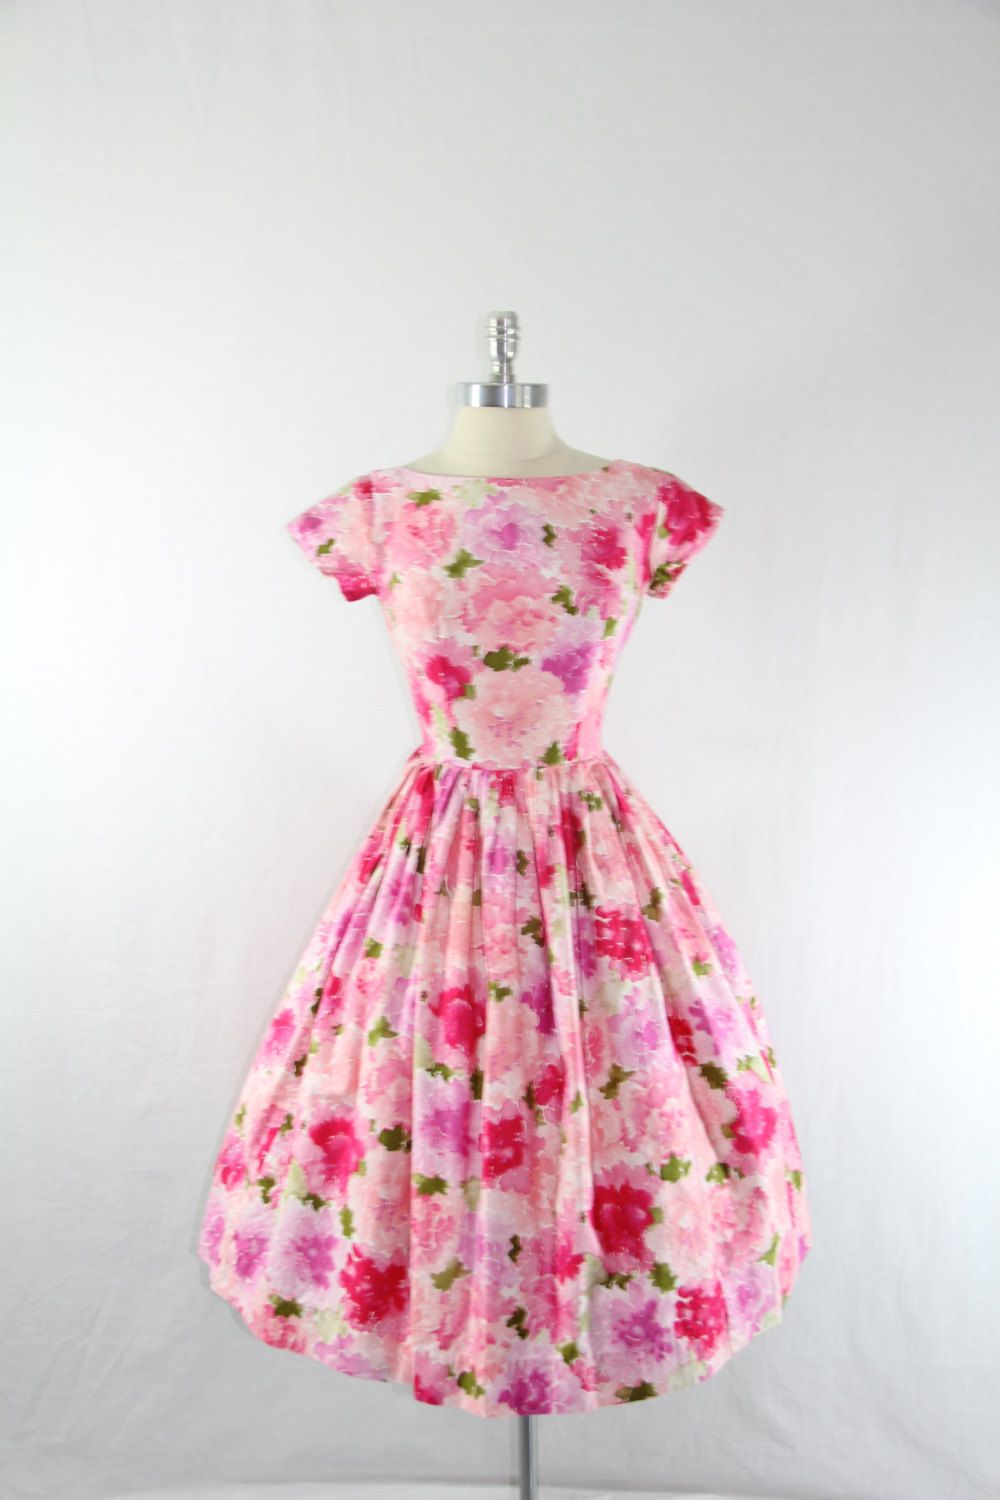 1950s Party Dress - Vintage Rayon Watercolor Pink Floral Print Garden Party Dress